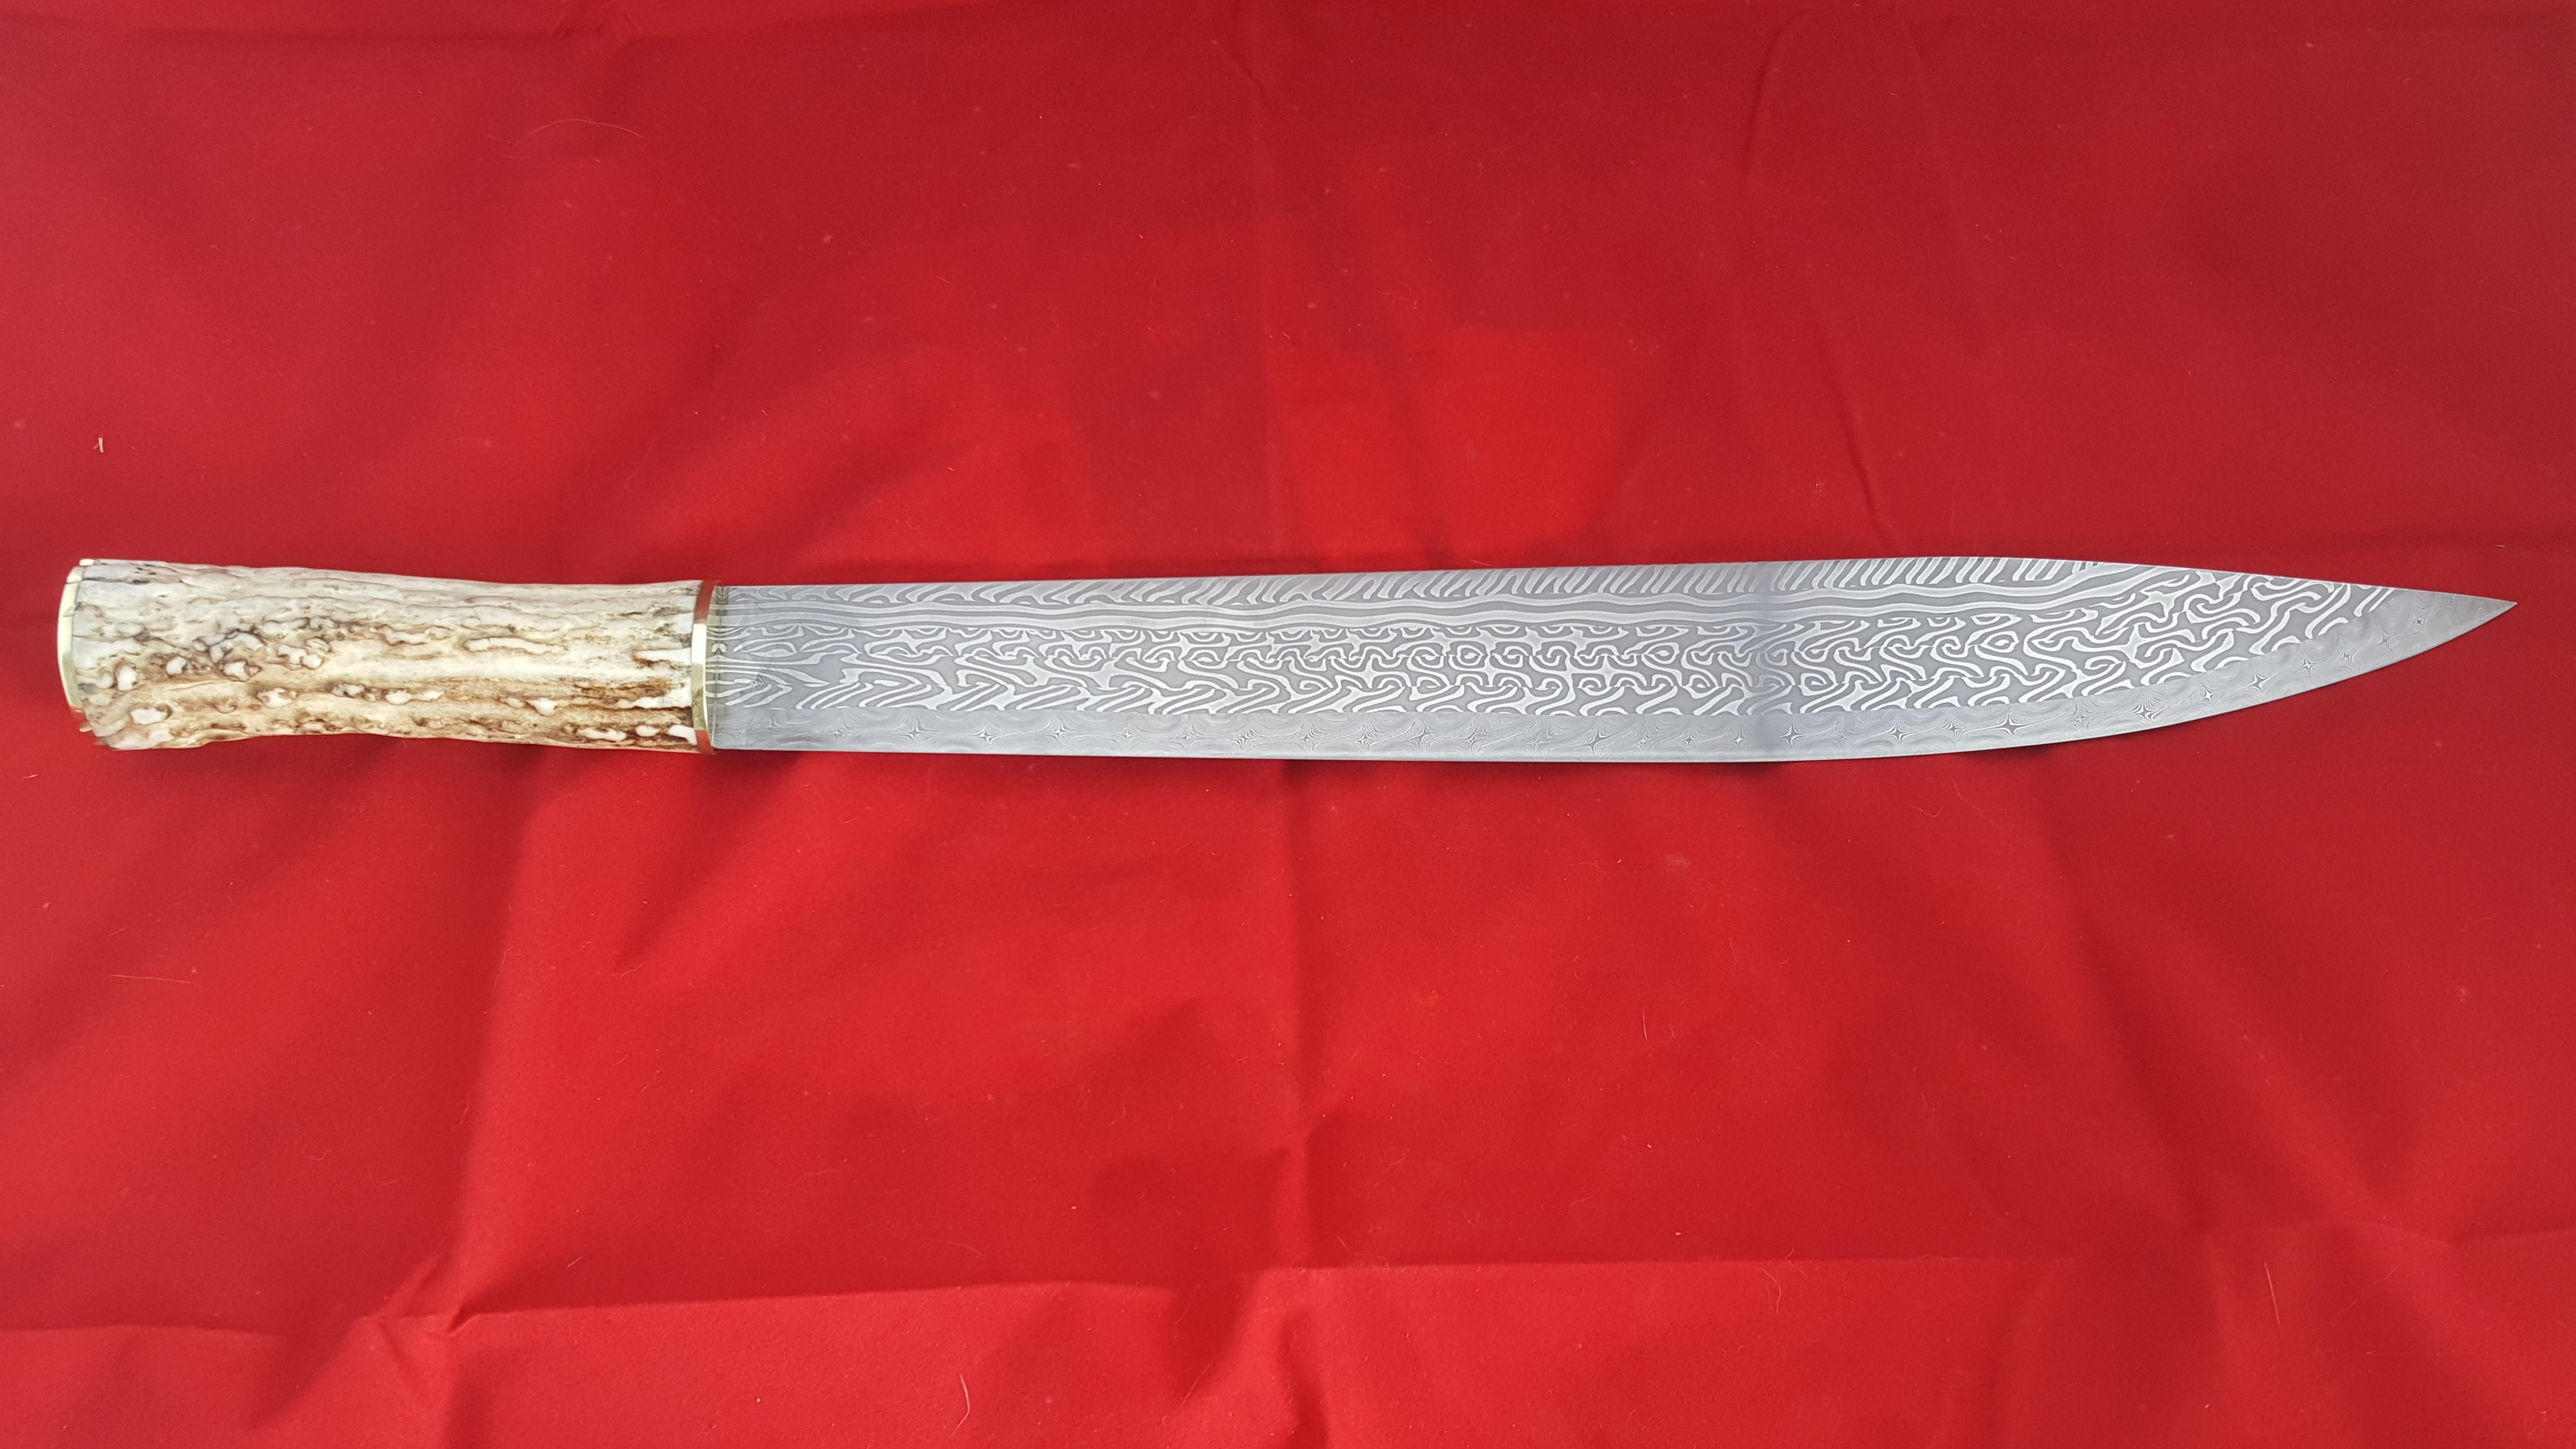 Large seax (56cm full length) with antler handle.